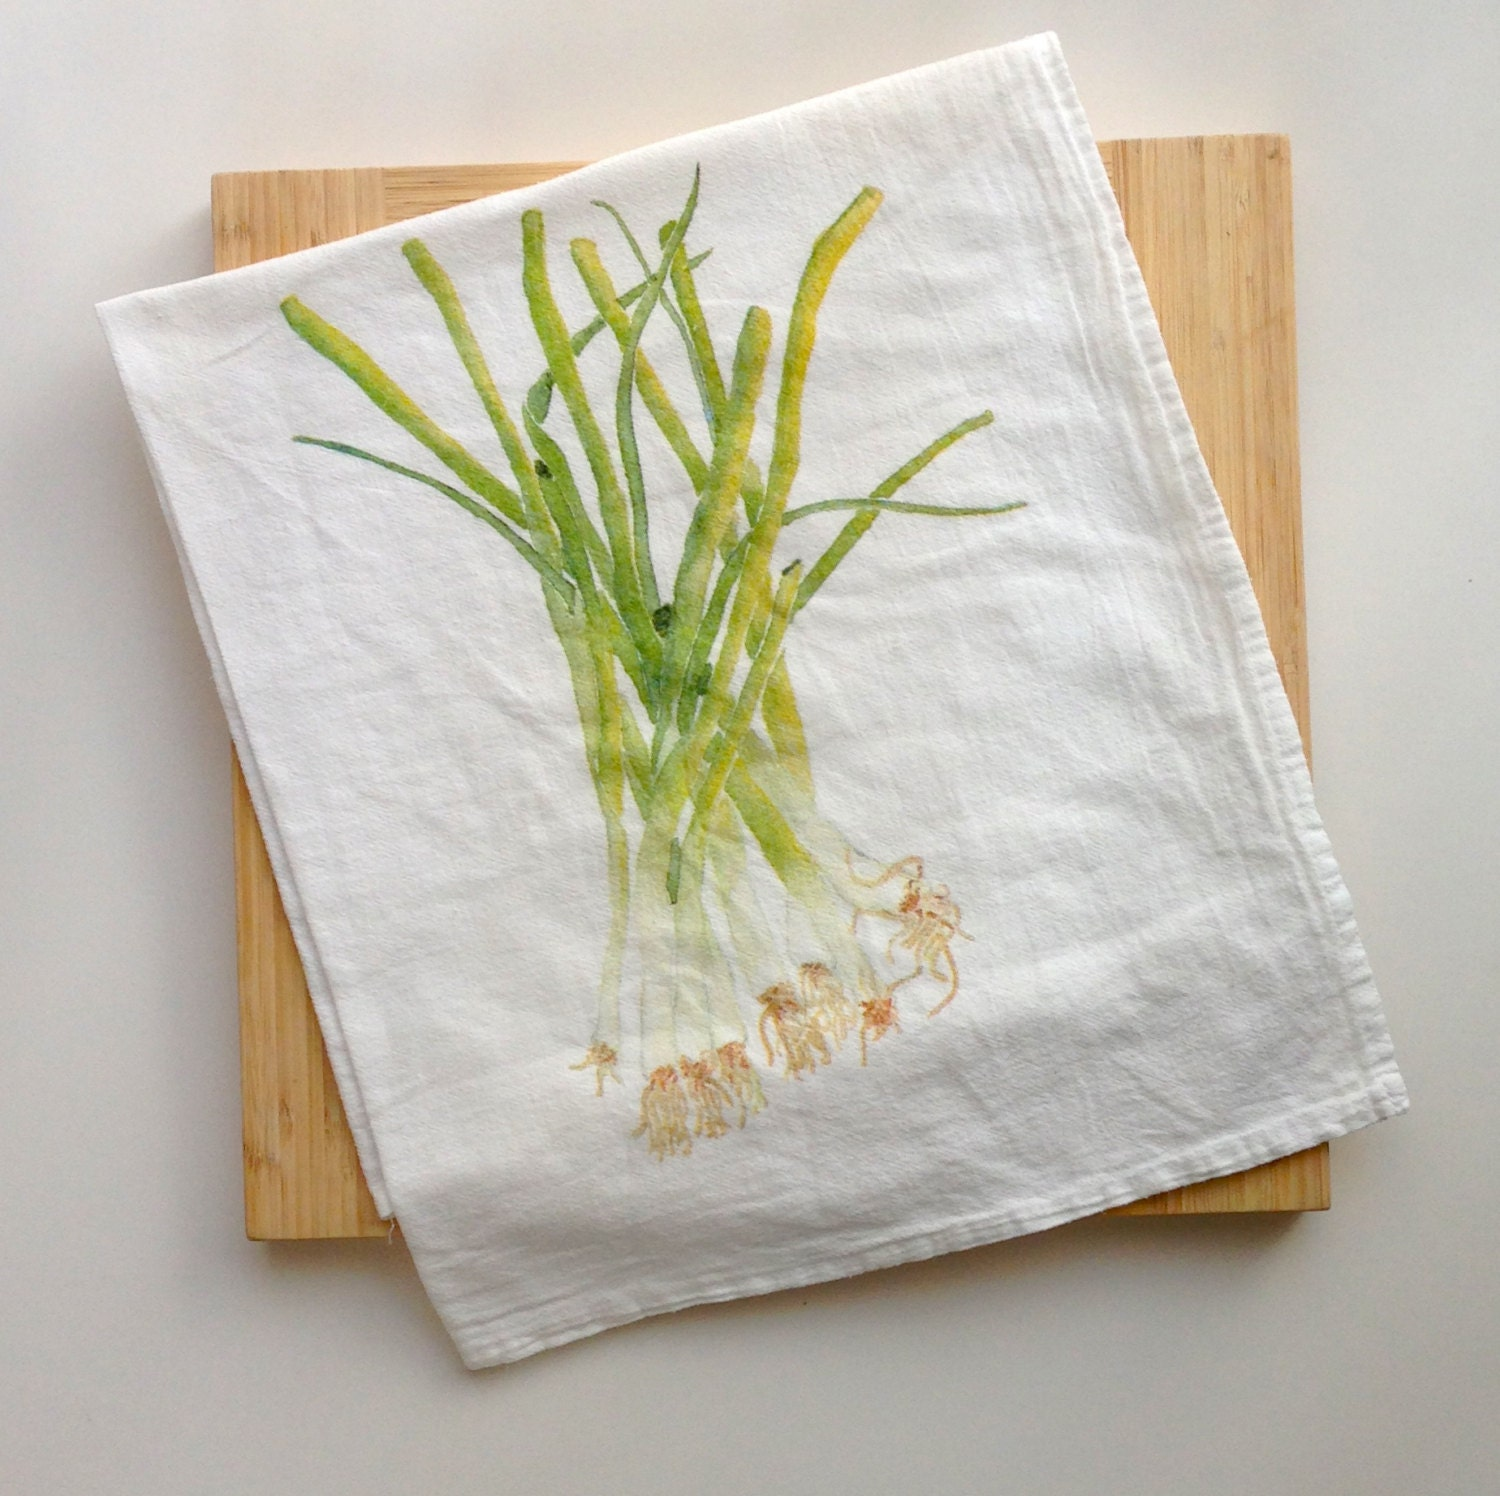 Green Onion Flour Sack Tea Towel Colorful Herb By